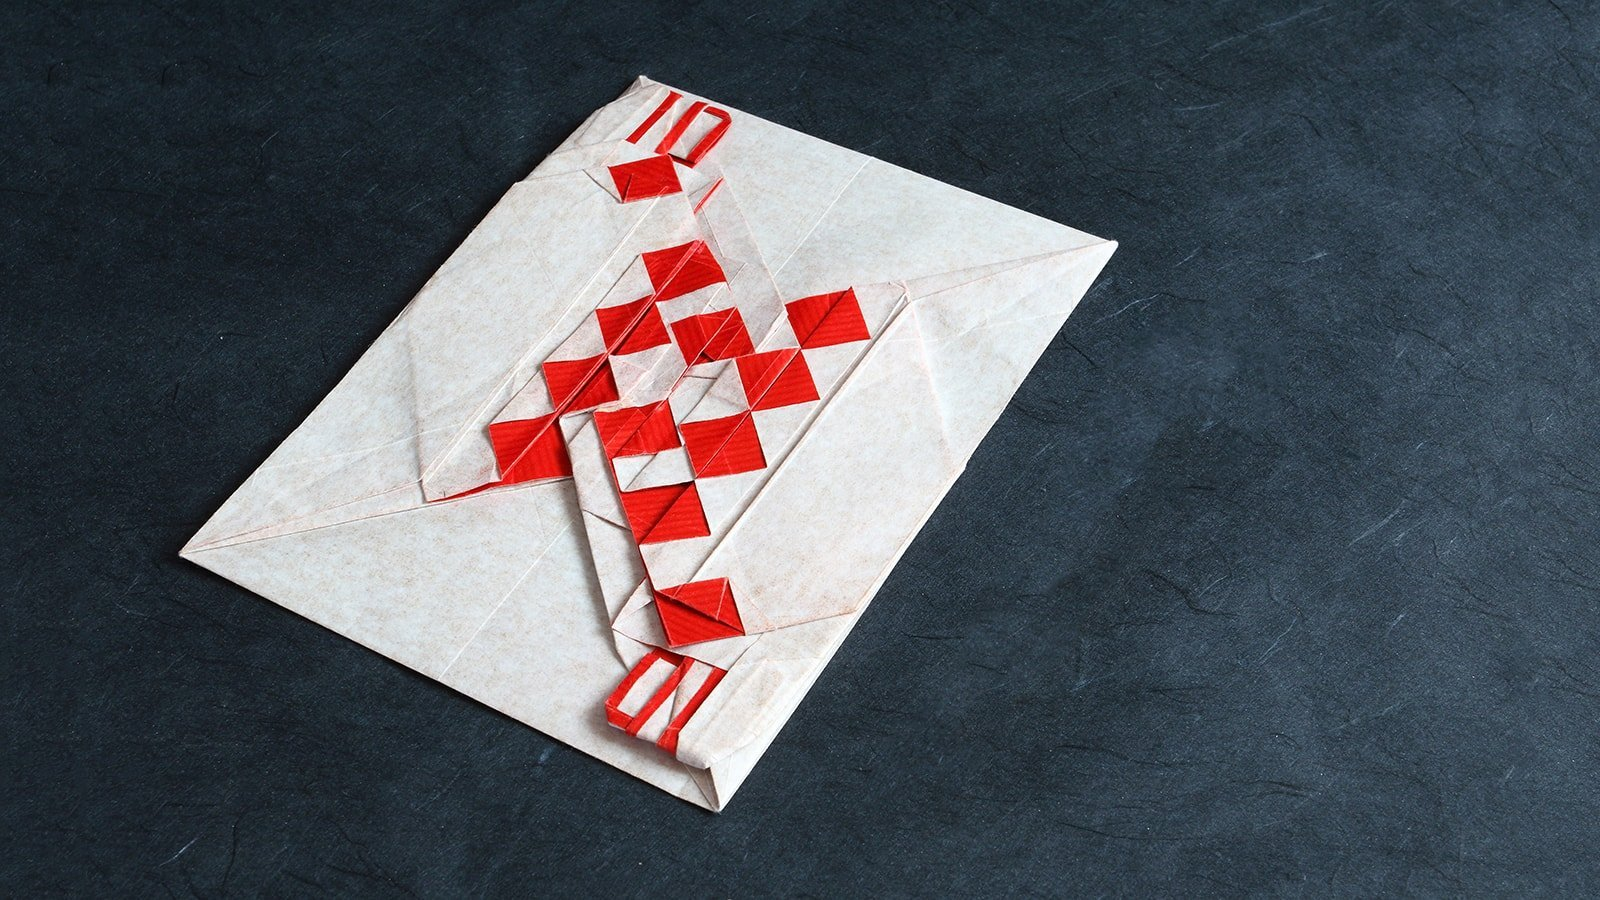 Origami Cards and Chess